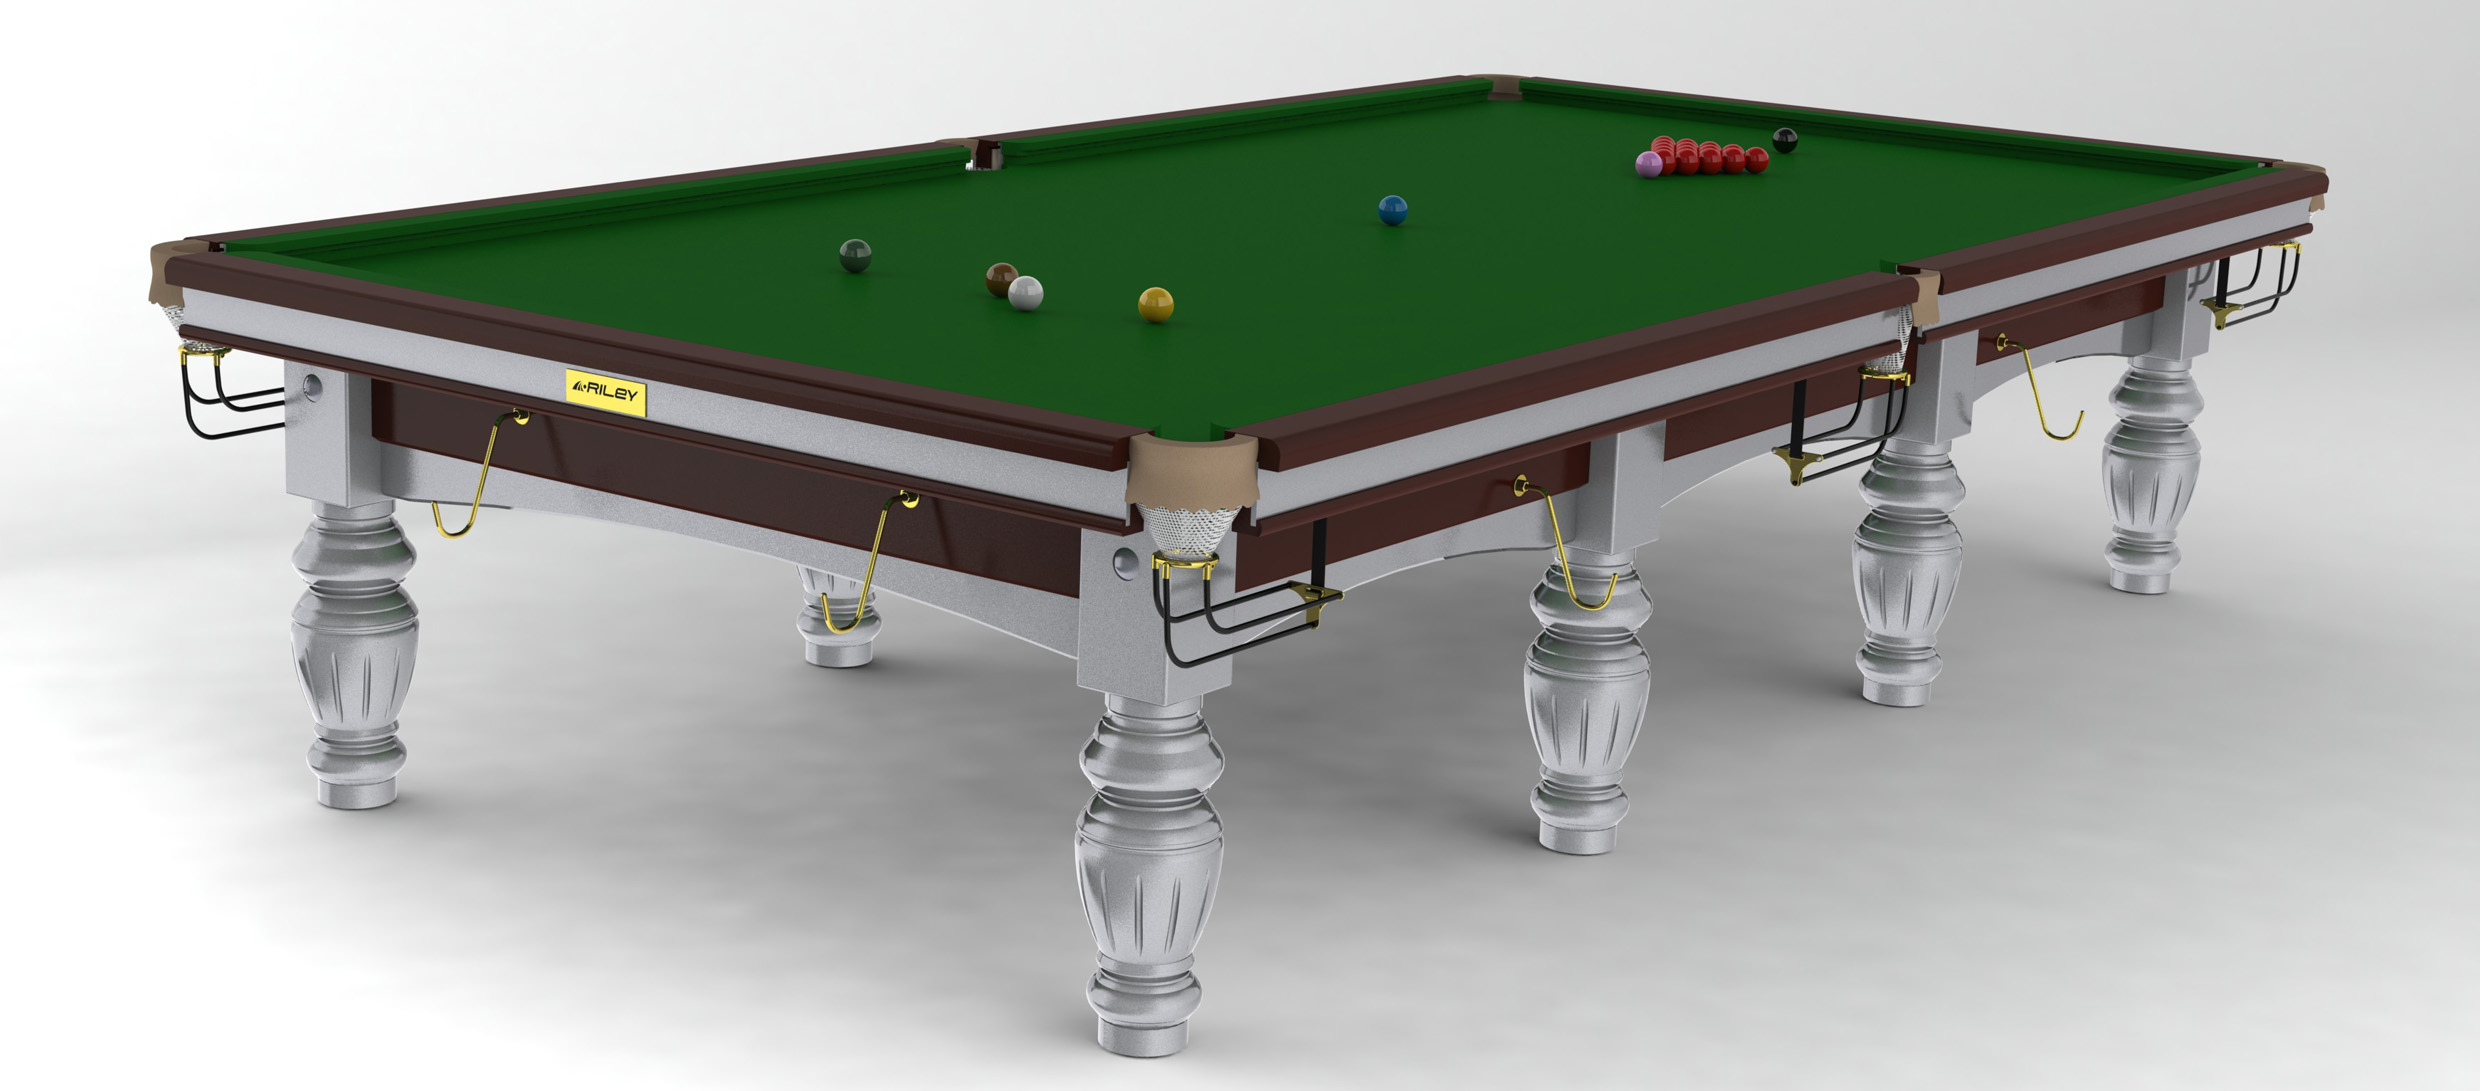 classics portfolio birmingham snooker pool table dining billiards timeless classic tables